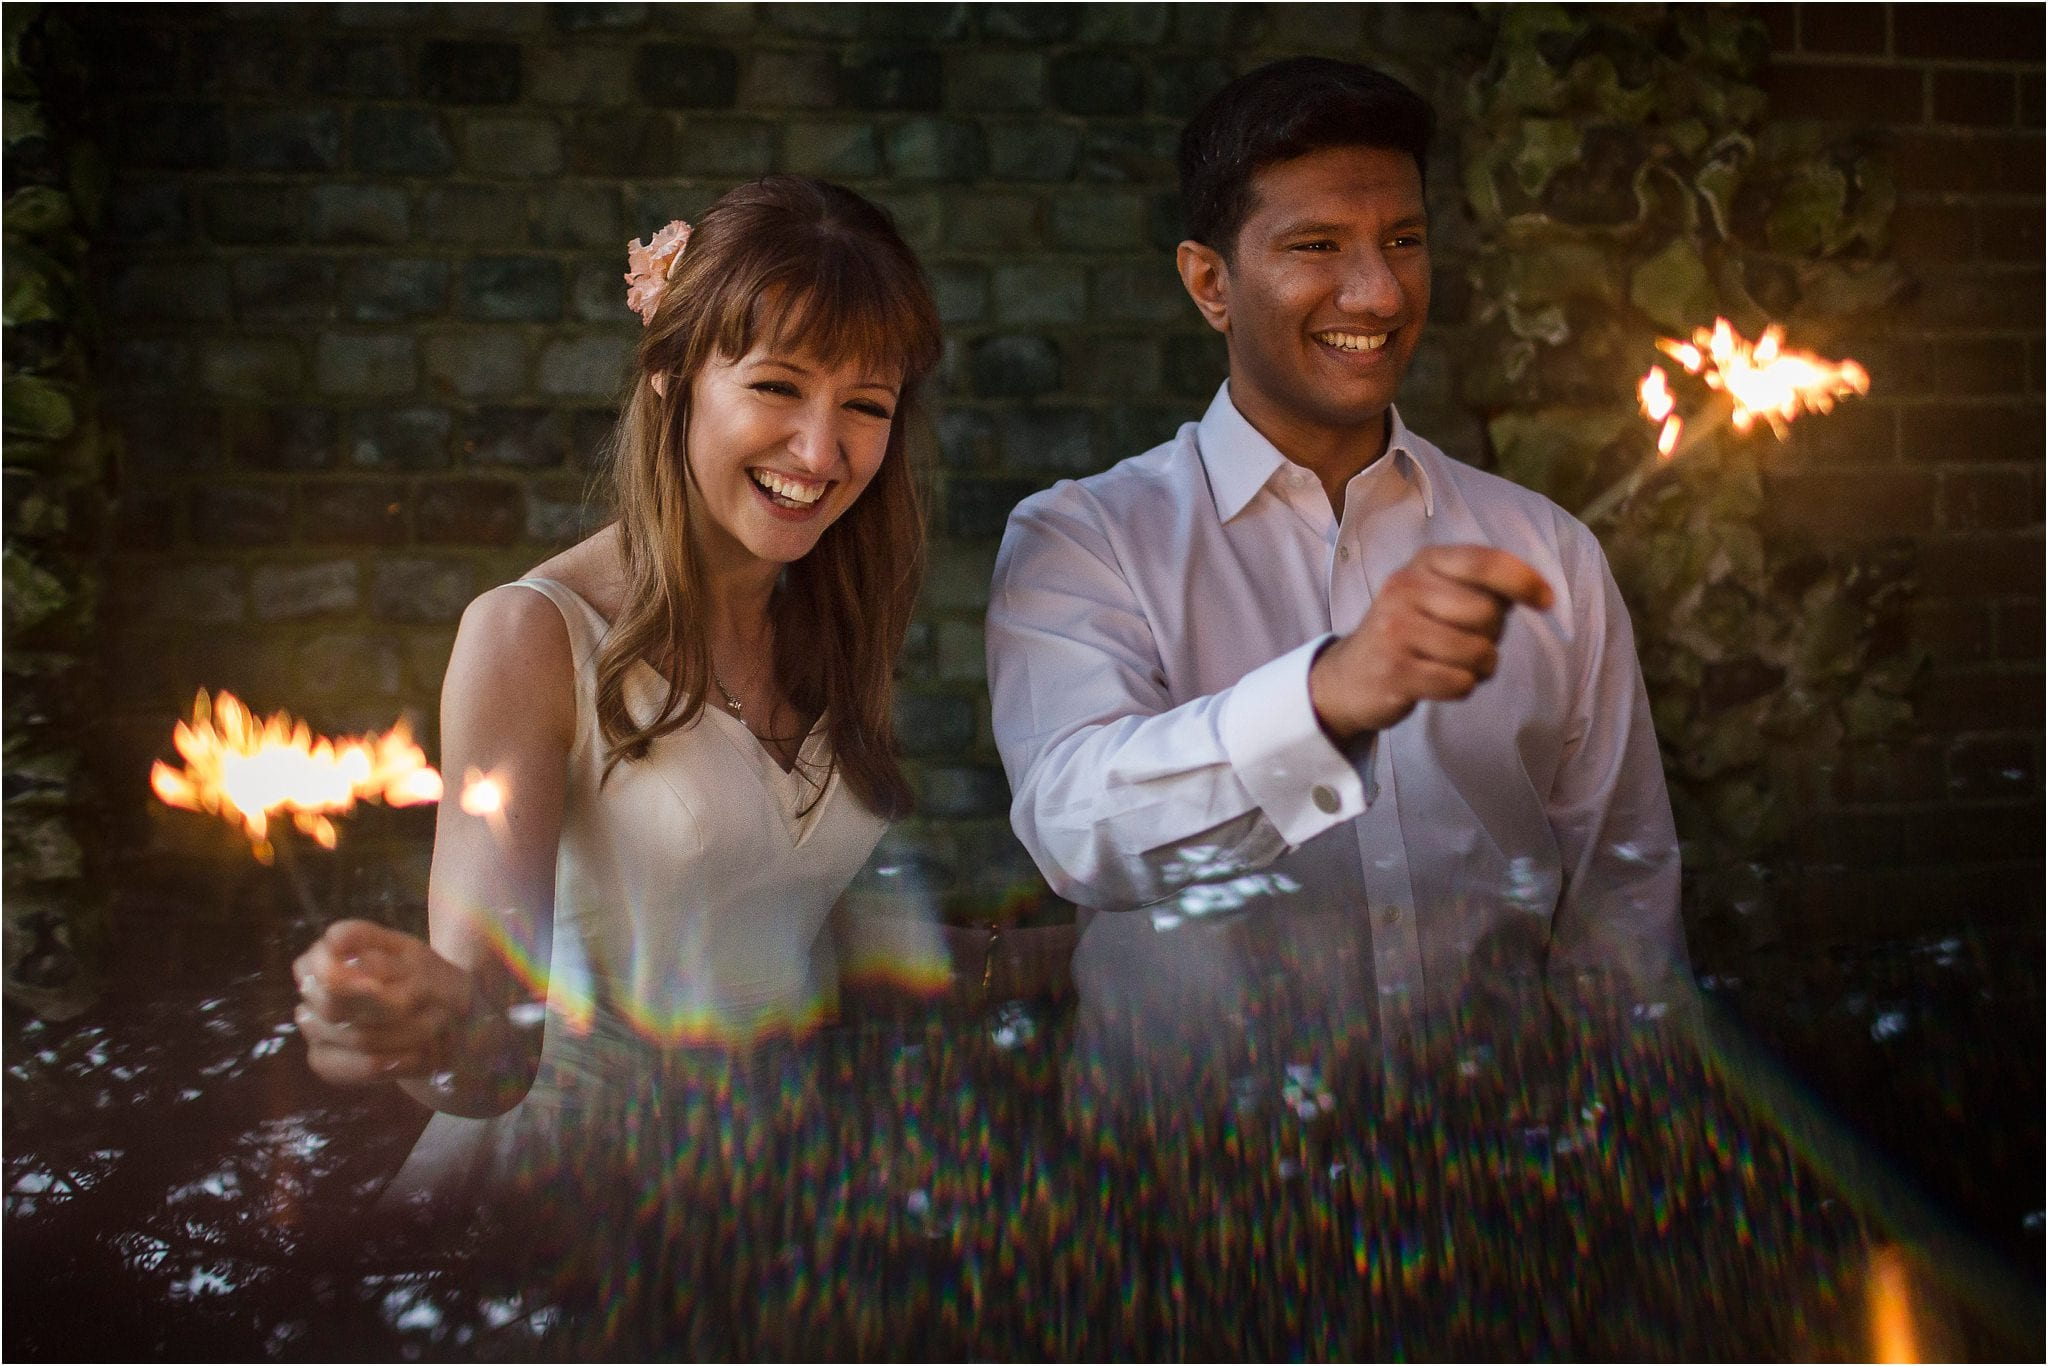 A bride and groom playing with sparklers on their wedding day. Image by S2 Images, Hampden House Wedding Photographer